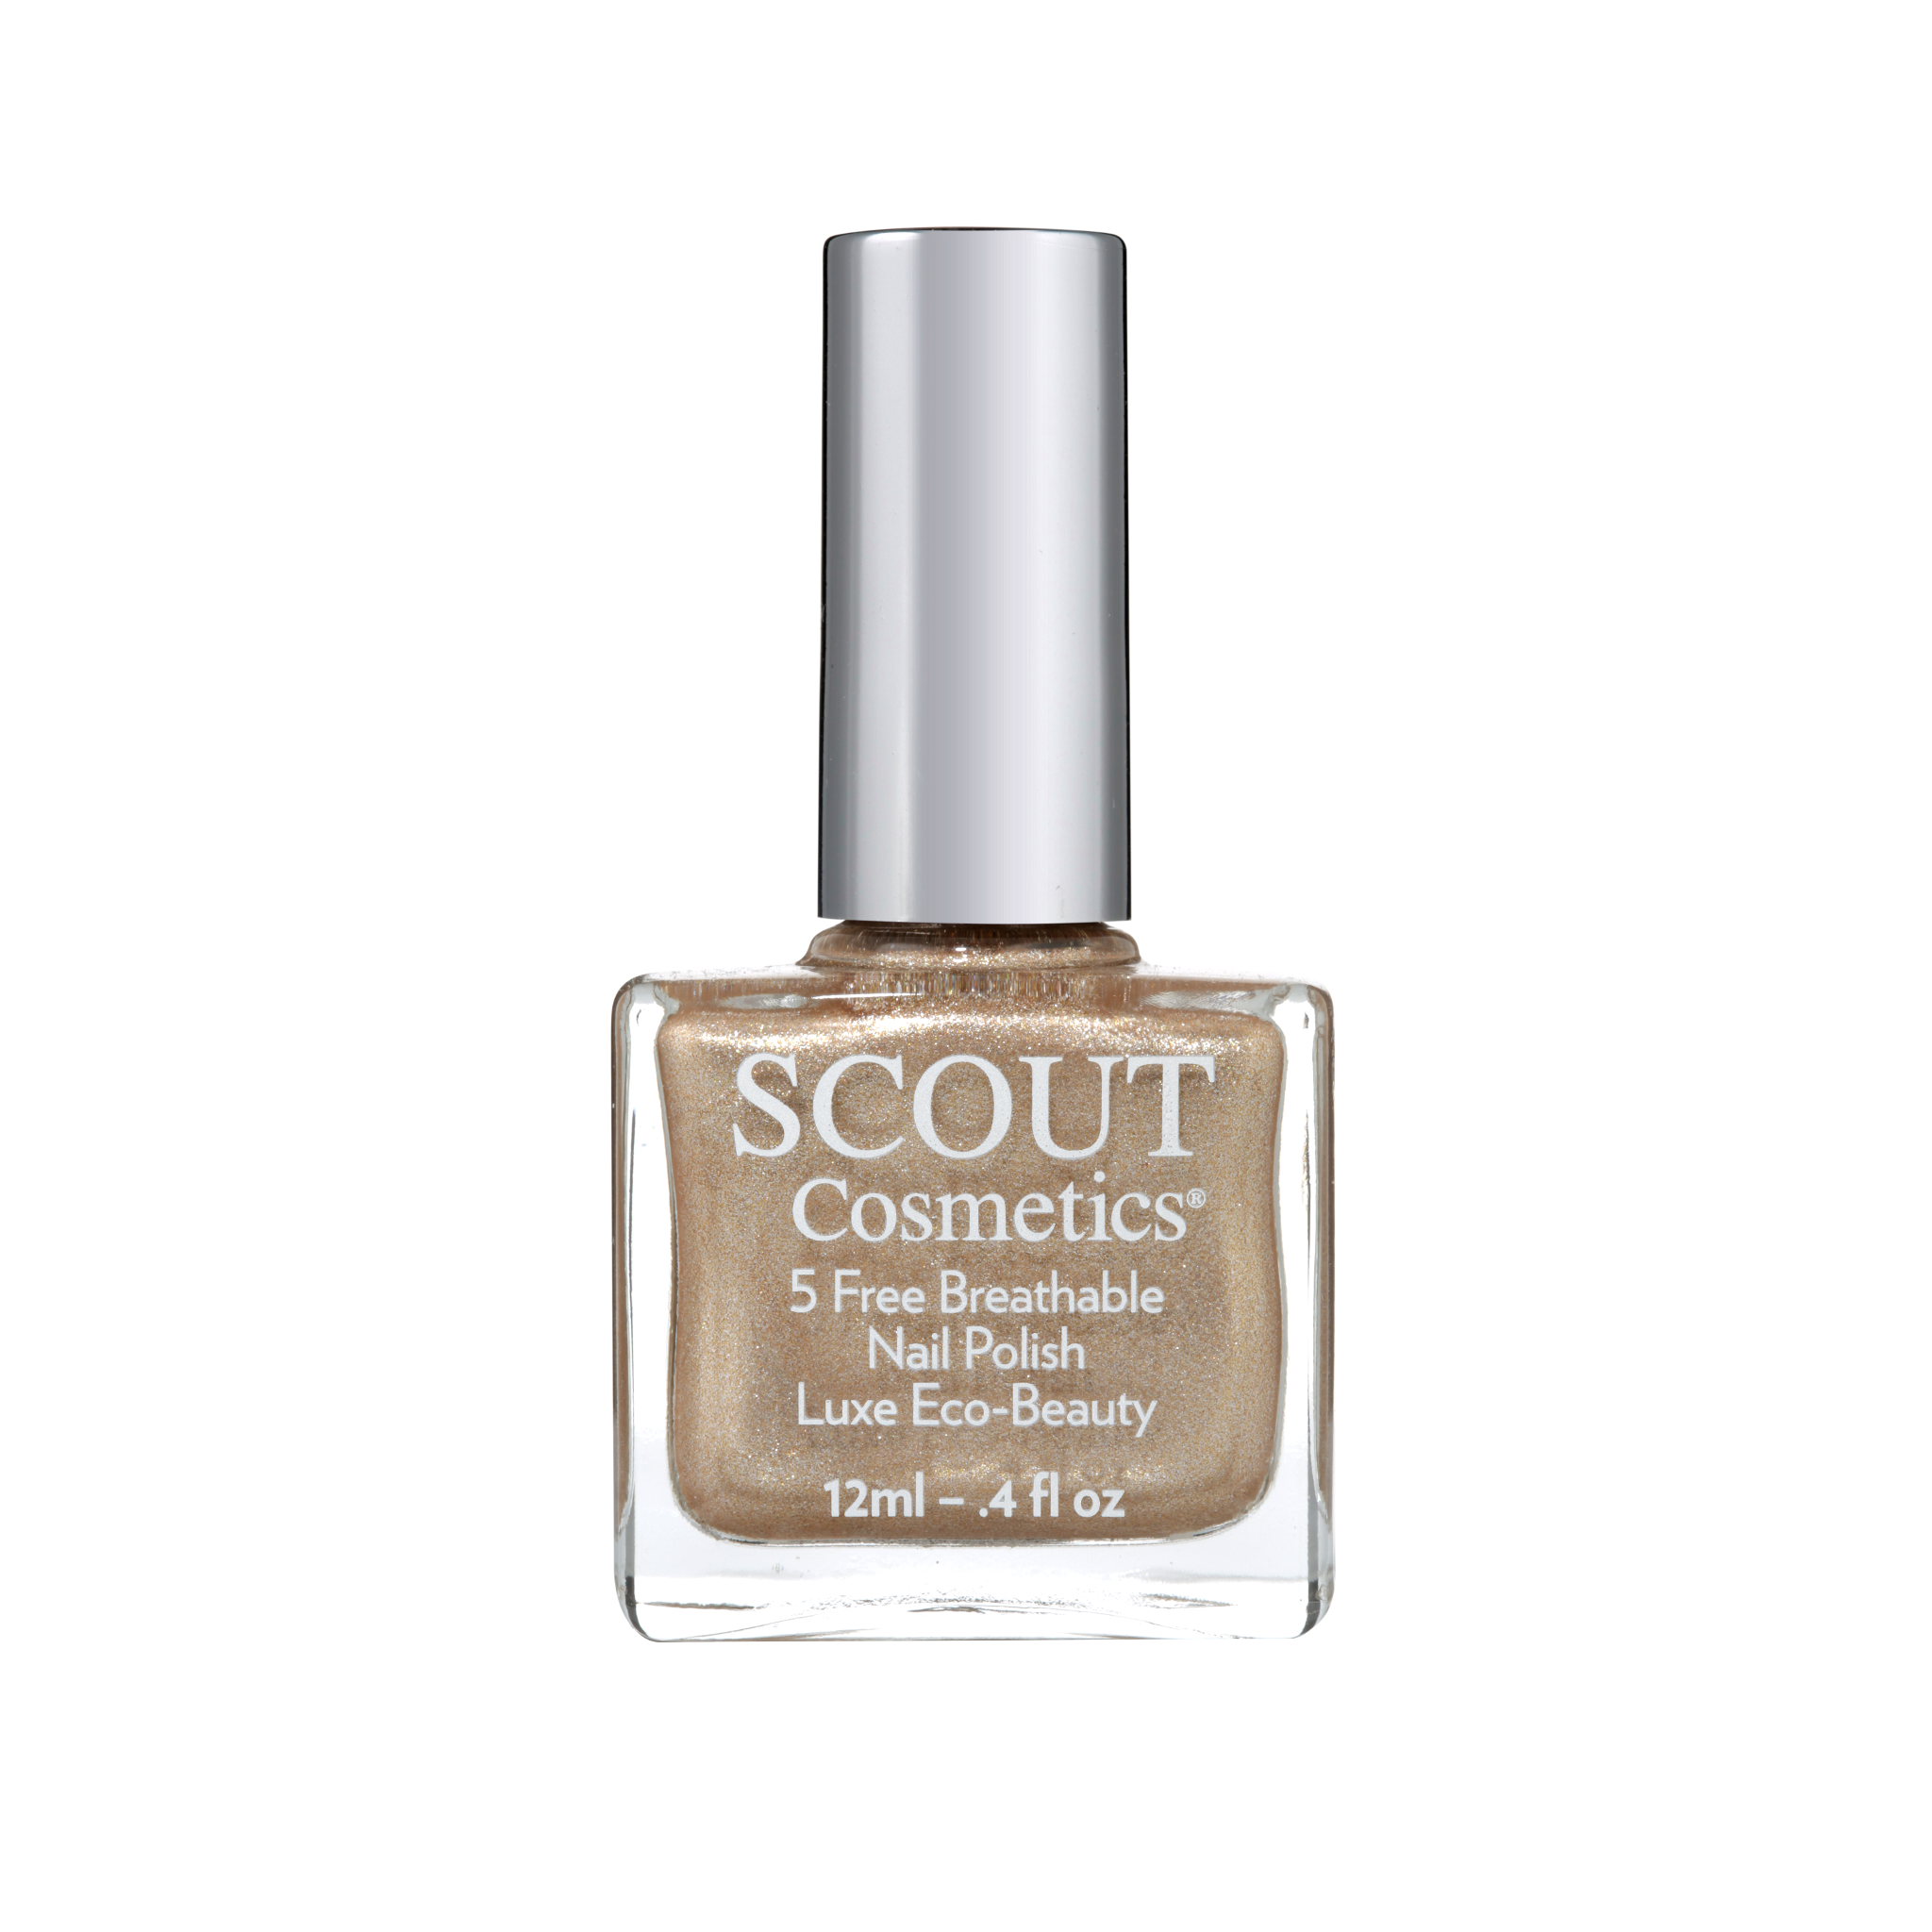 SCOUT Cosmetics Nail Polish - Truly Madly Deeply